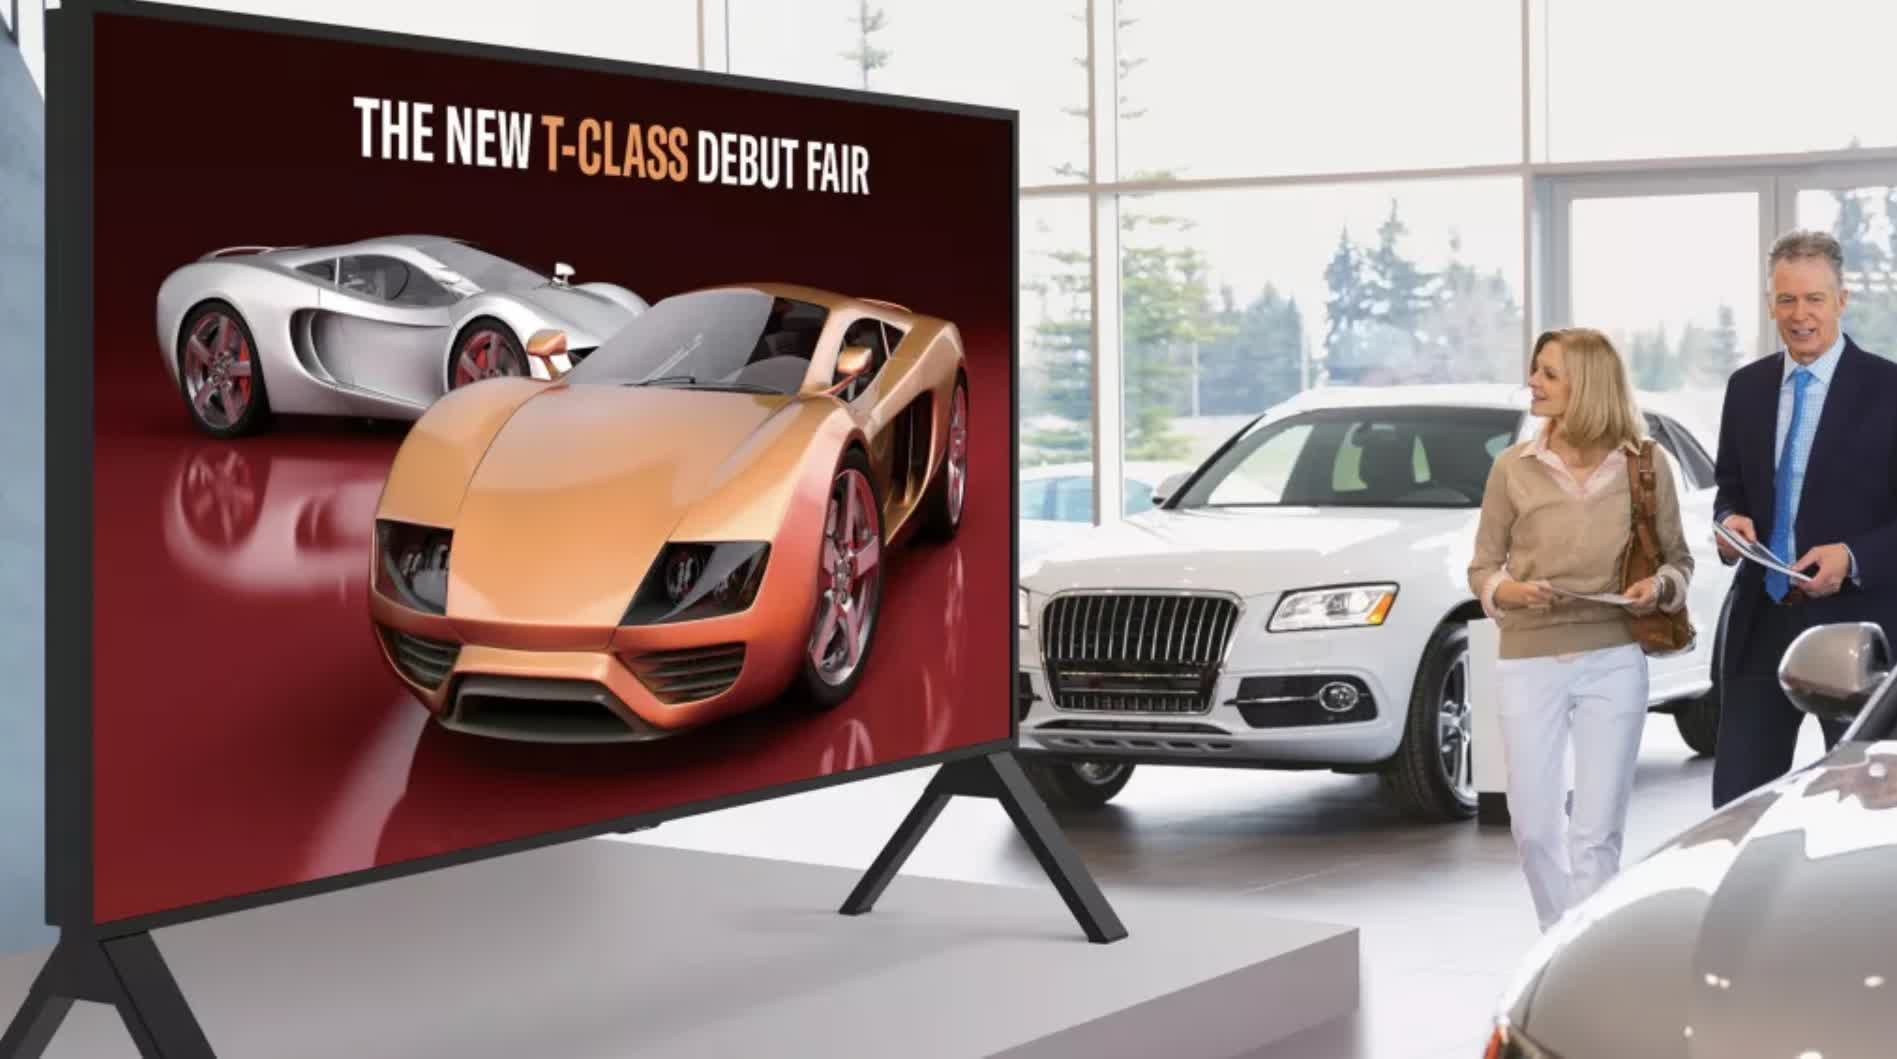 Sharp's new 120-inch 8K display features 2,048 dimming zones, a 120Hz refresh rate, and more